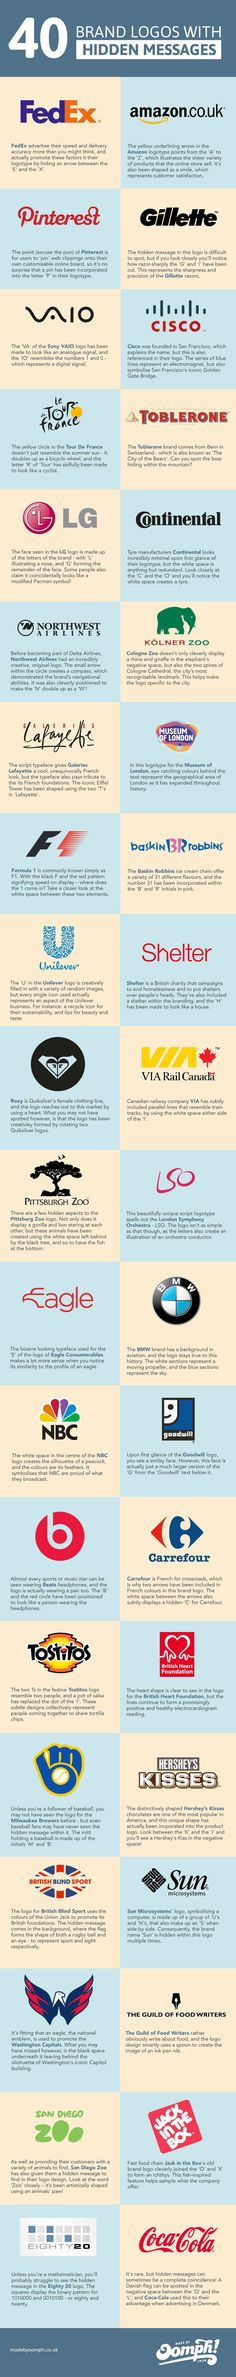 40 Hidden Messages in Famous Brand Logos